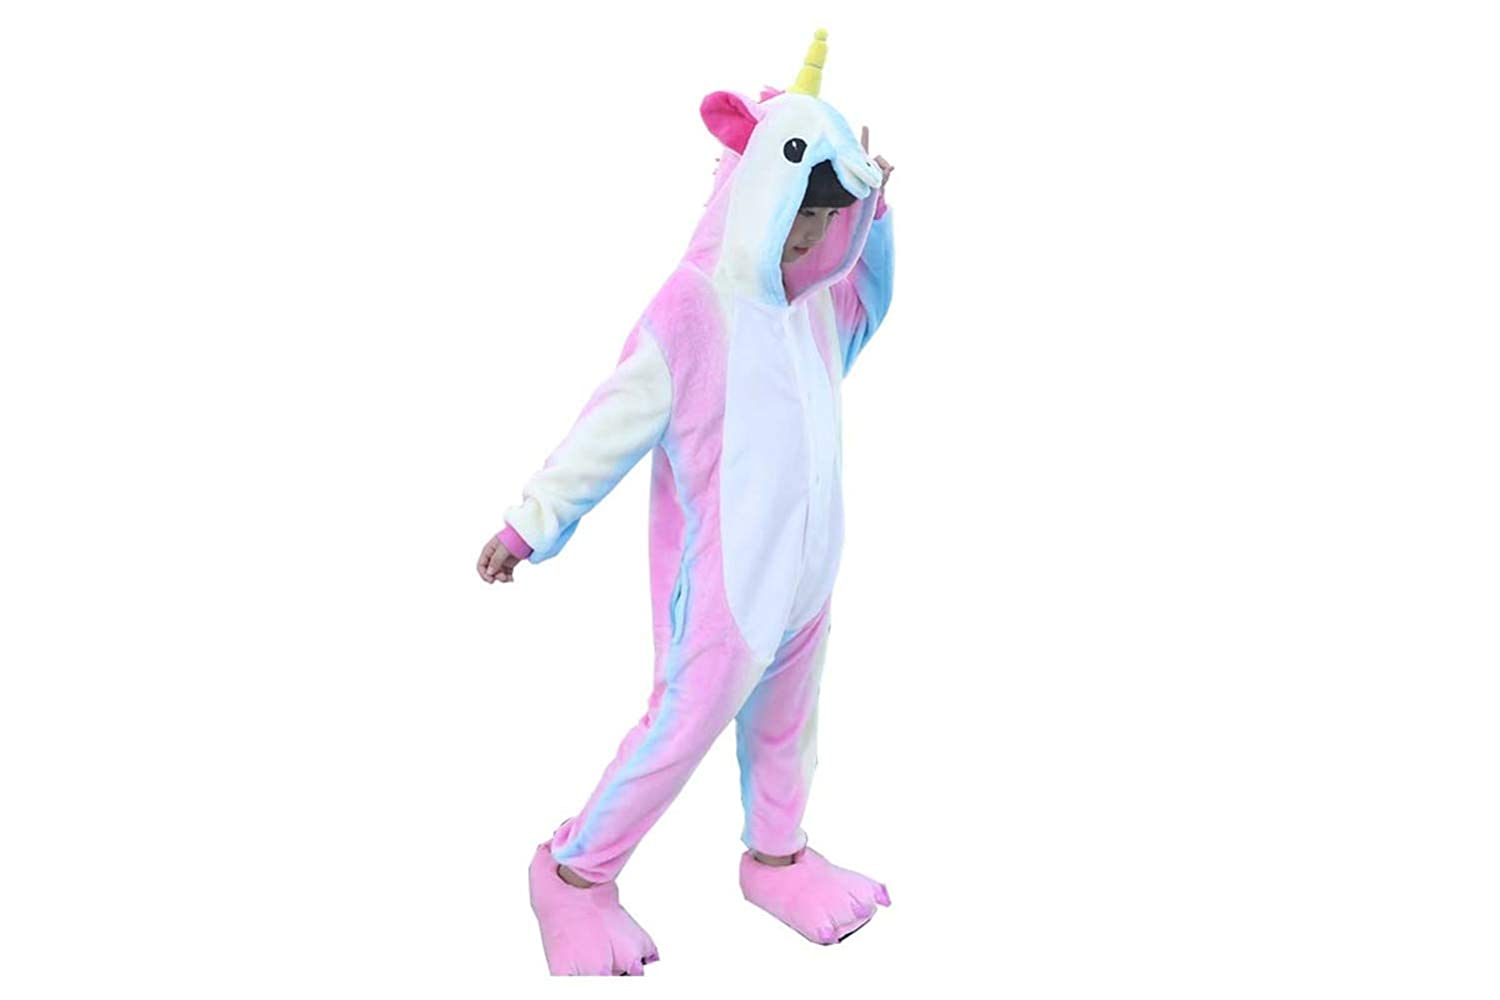 Licy Life Ragazzi Ragazze Pigiama Unicorno Tuta Costume Pigiama Carnevale Halloween Cosplay Party Animali Cartoon Regalo di Compleanno